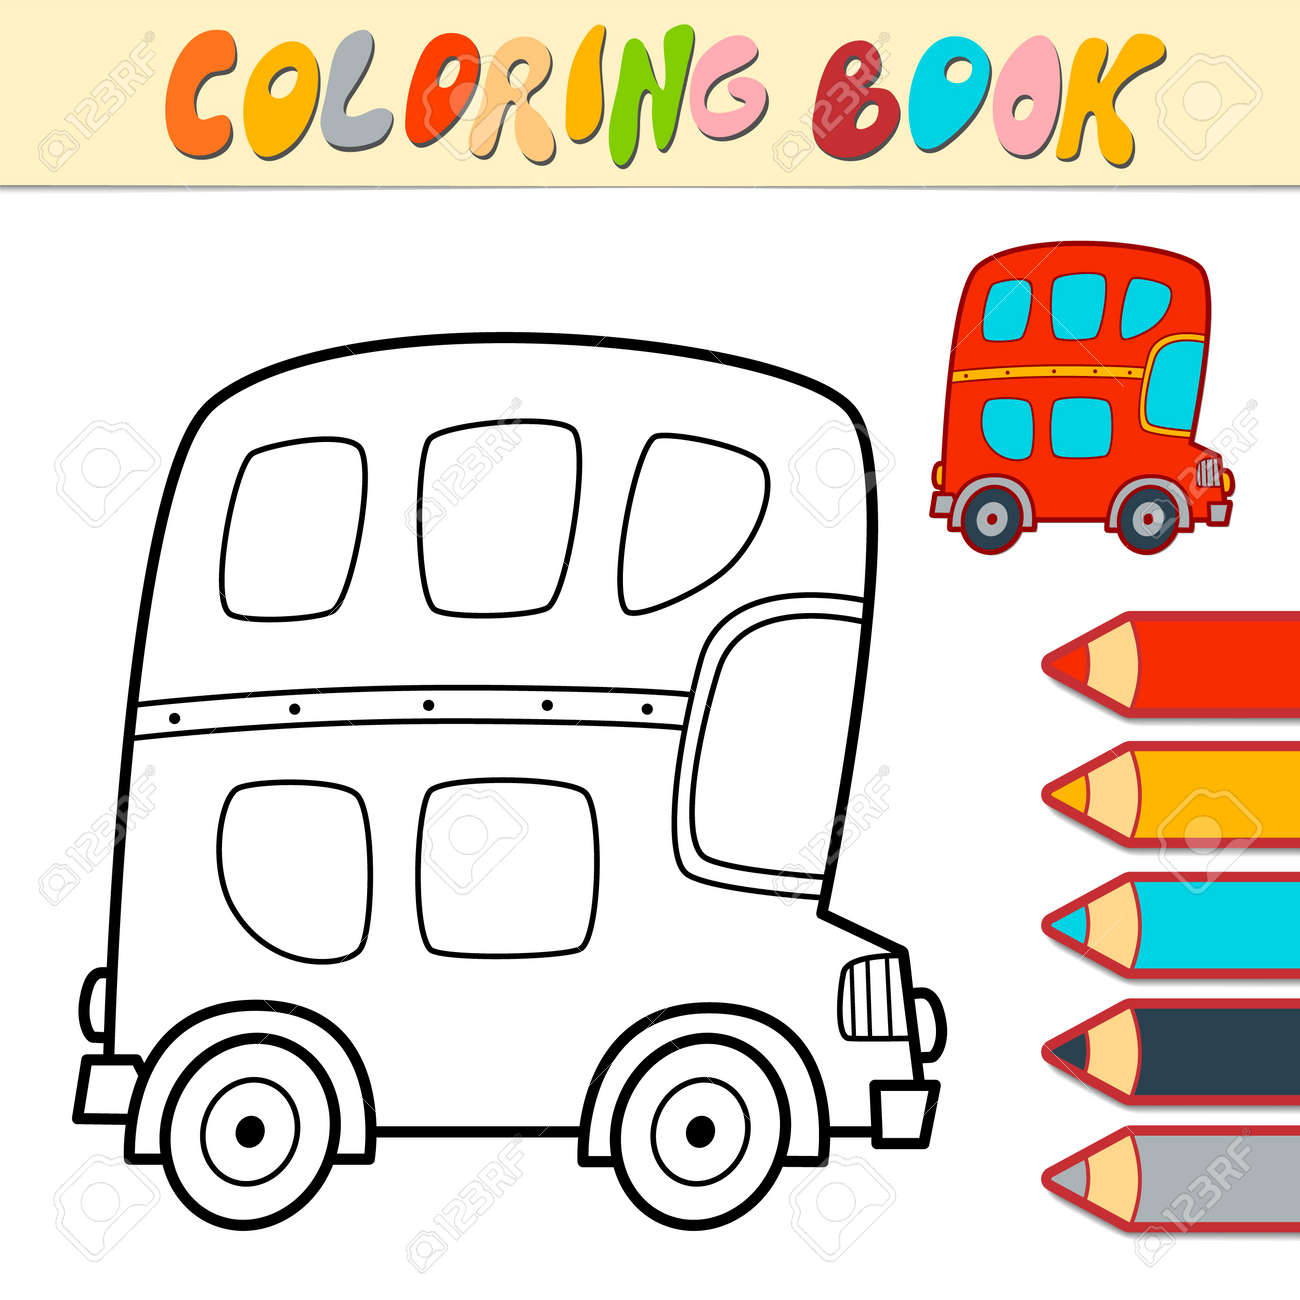 Coloring book or page for kids. bus black and white vector illustration - 168779462